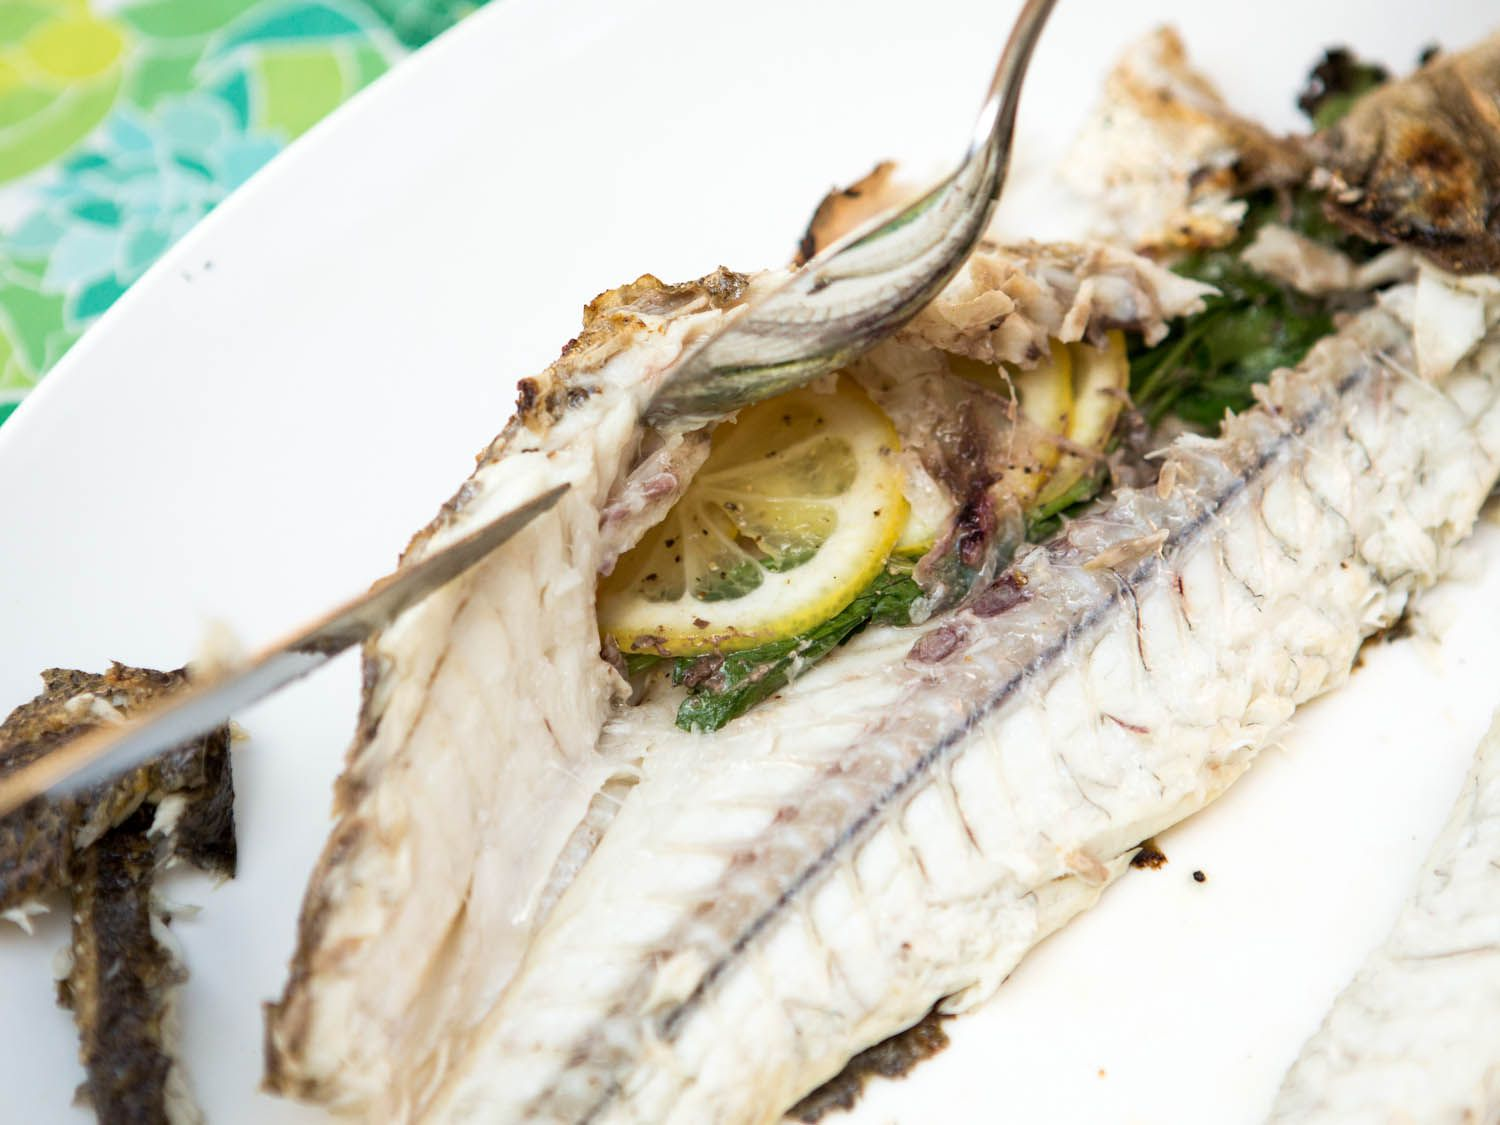 20140708-how-to-serve-whole-fish-vicky-wasik-16.jpg